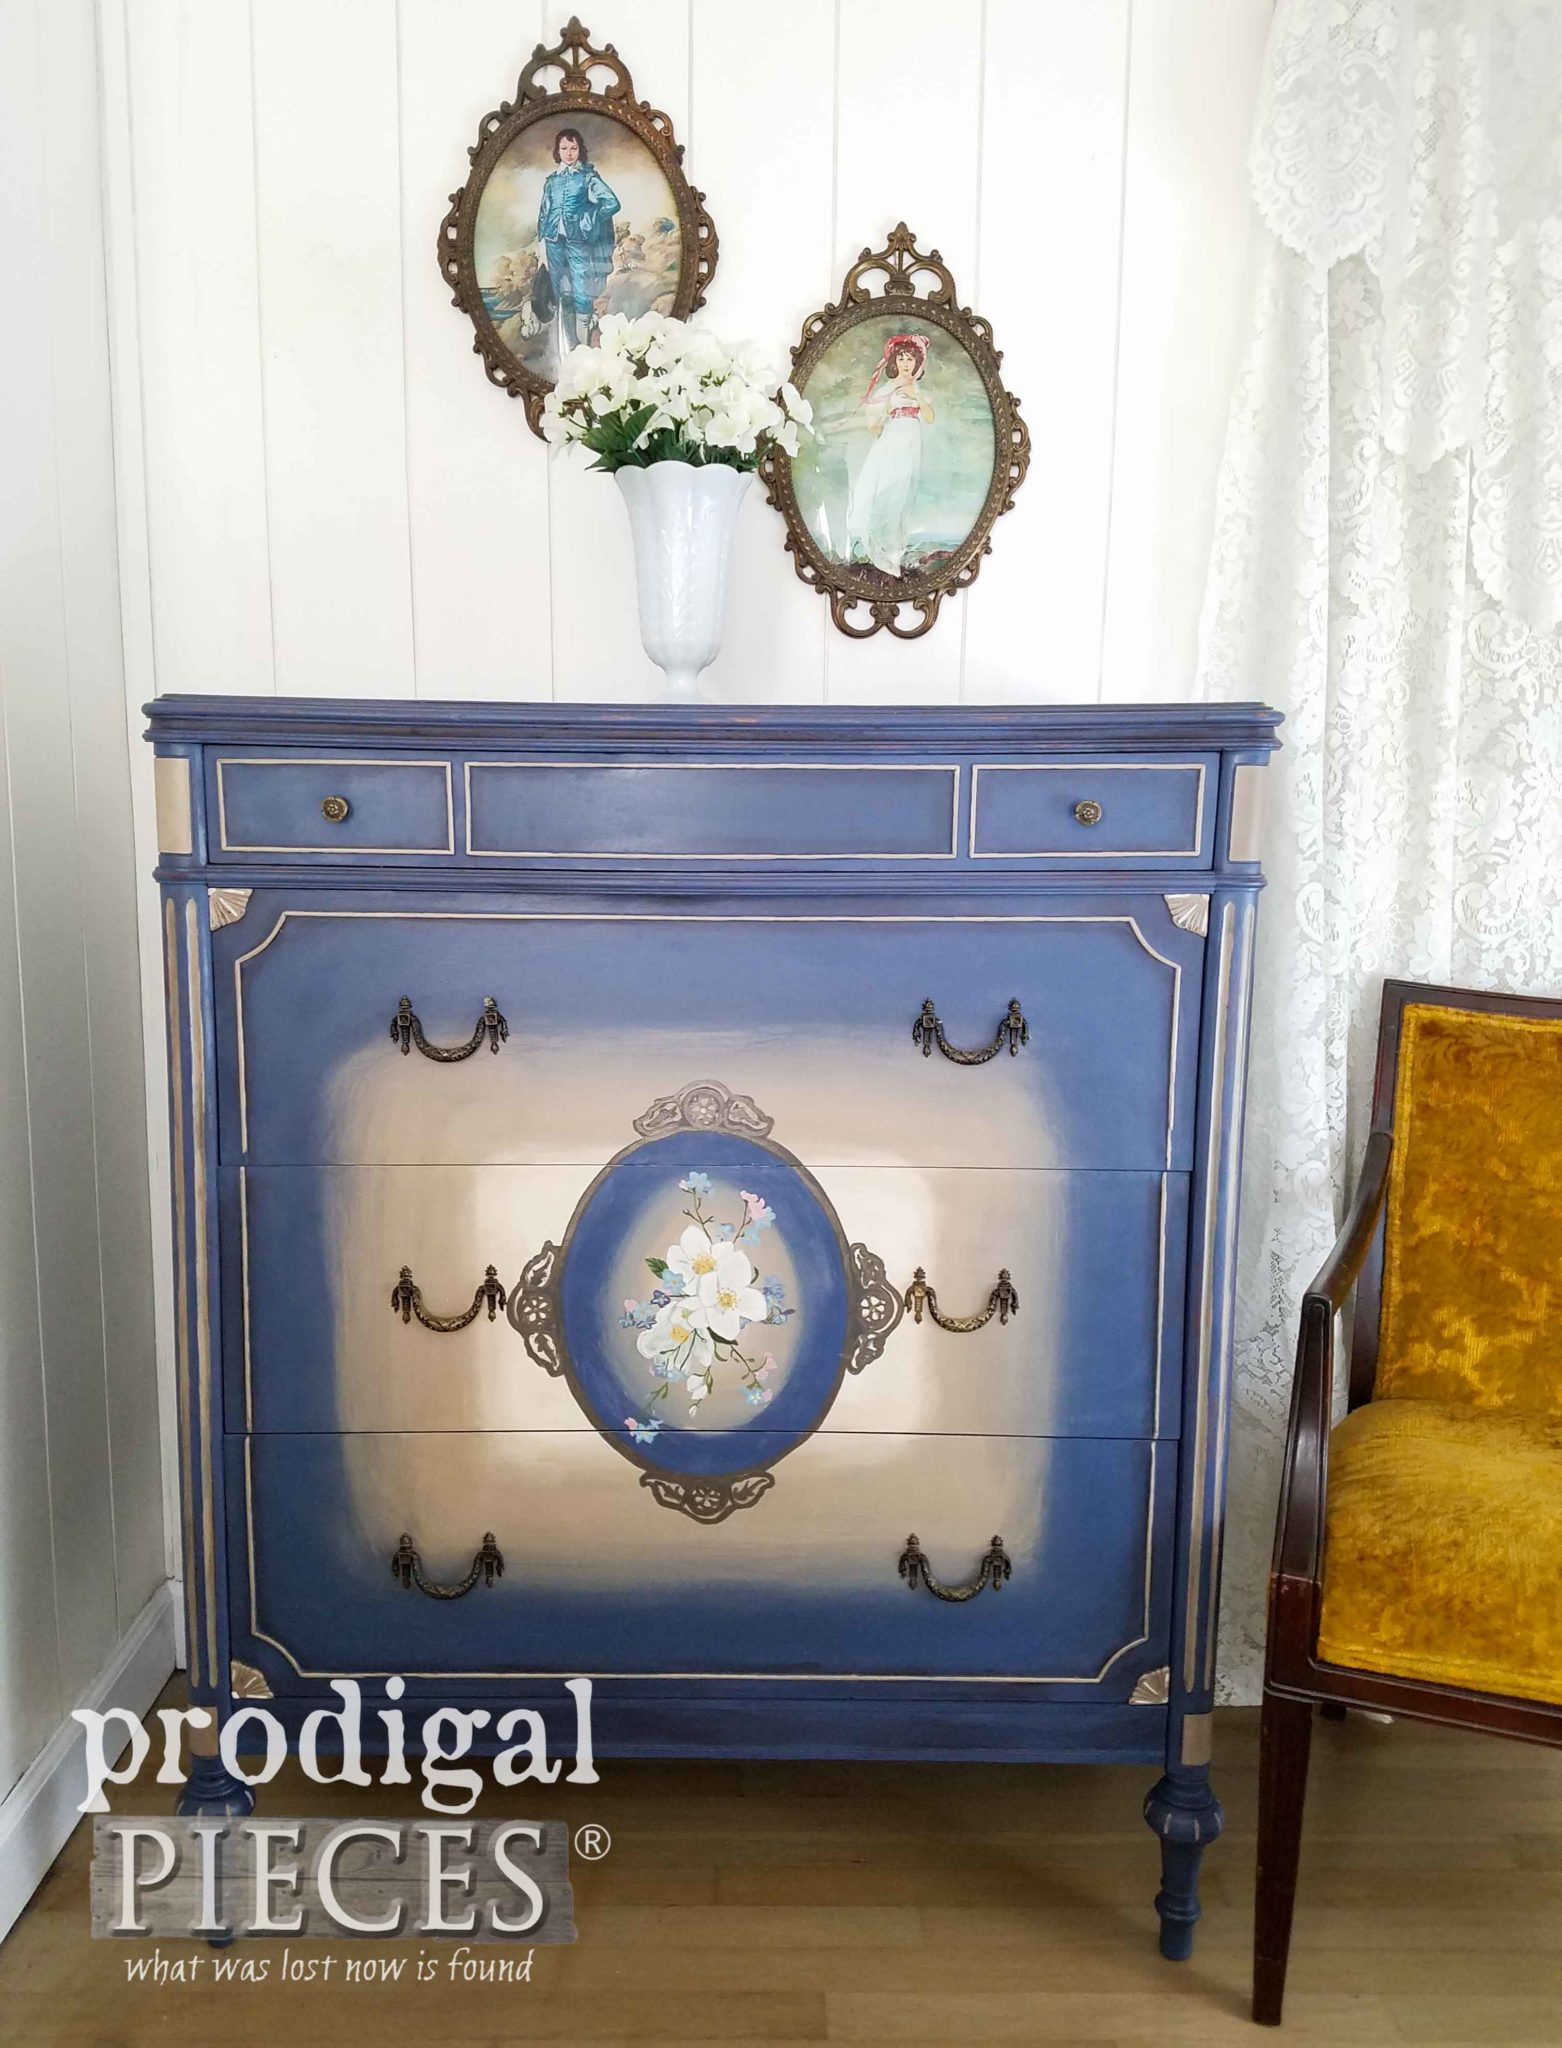 Striking Hand-Painted Antique Chest of Drawers in Yankee Blue by Larissa of Prodigal Pieces | prodigalpieces.com